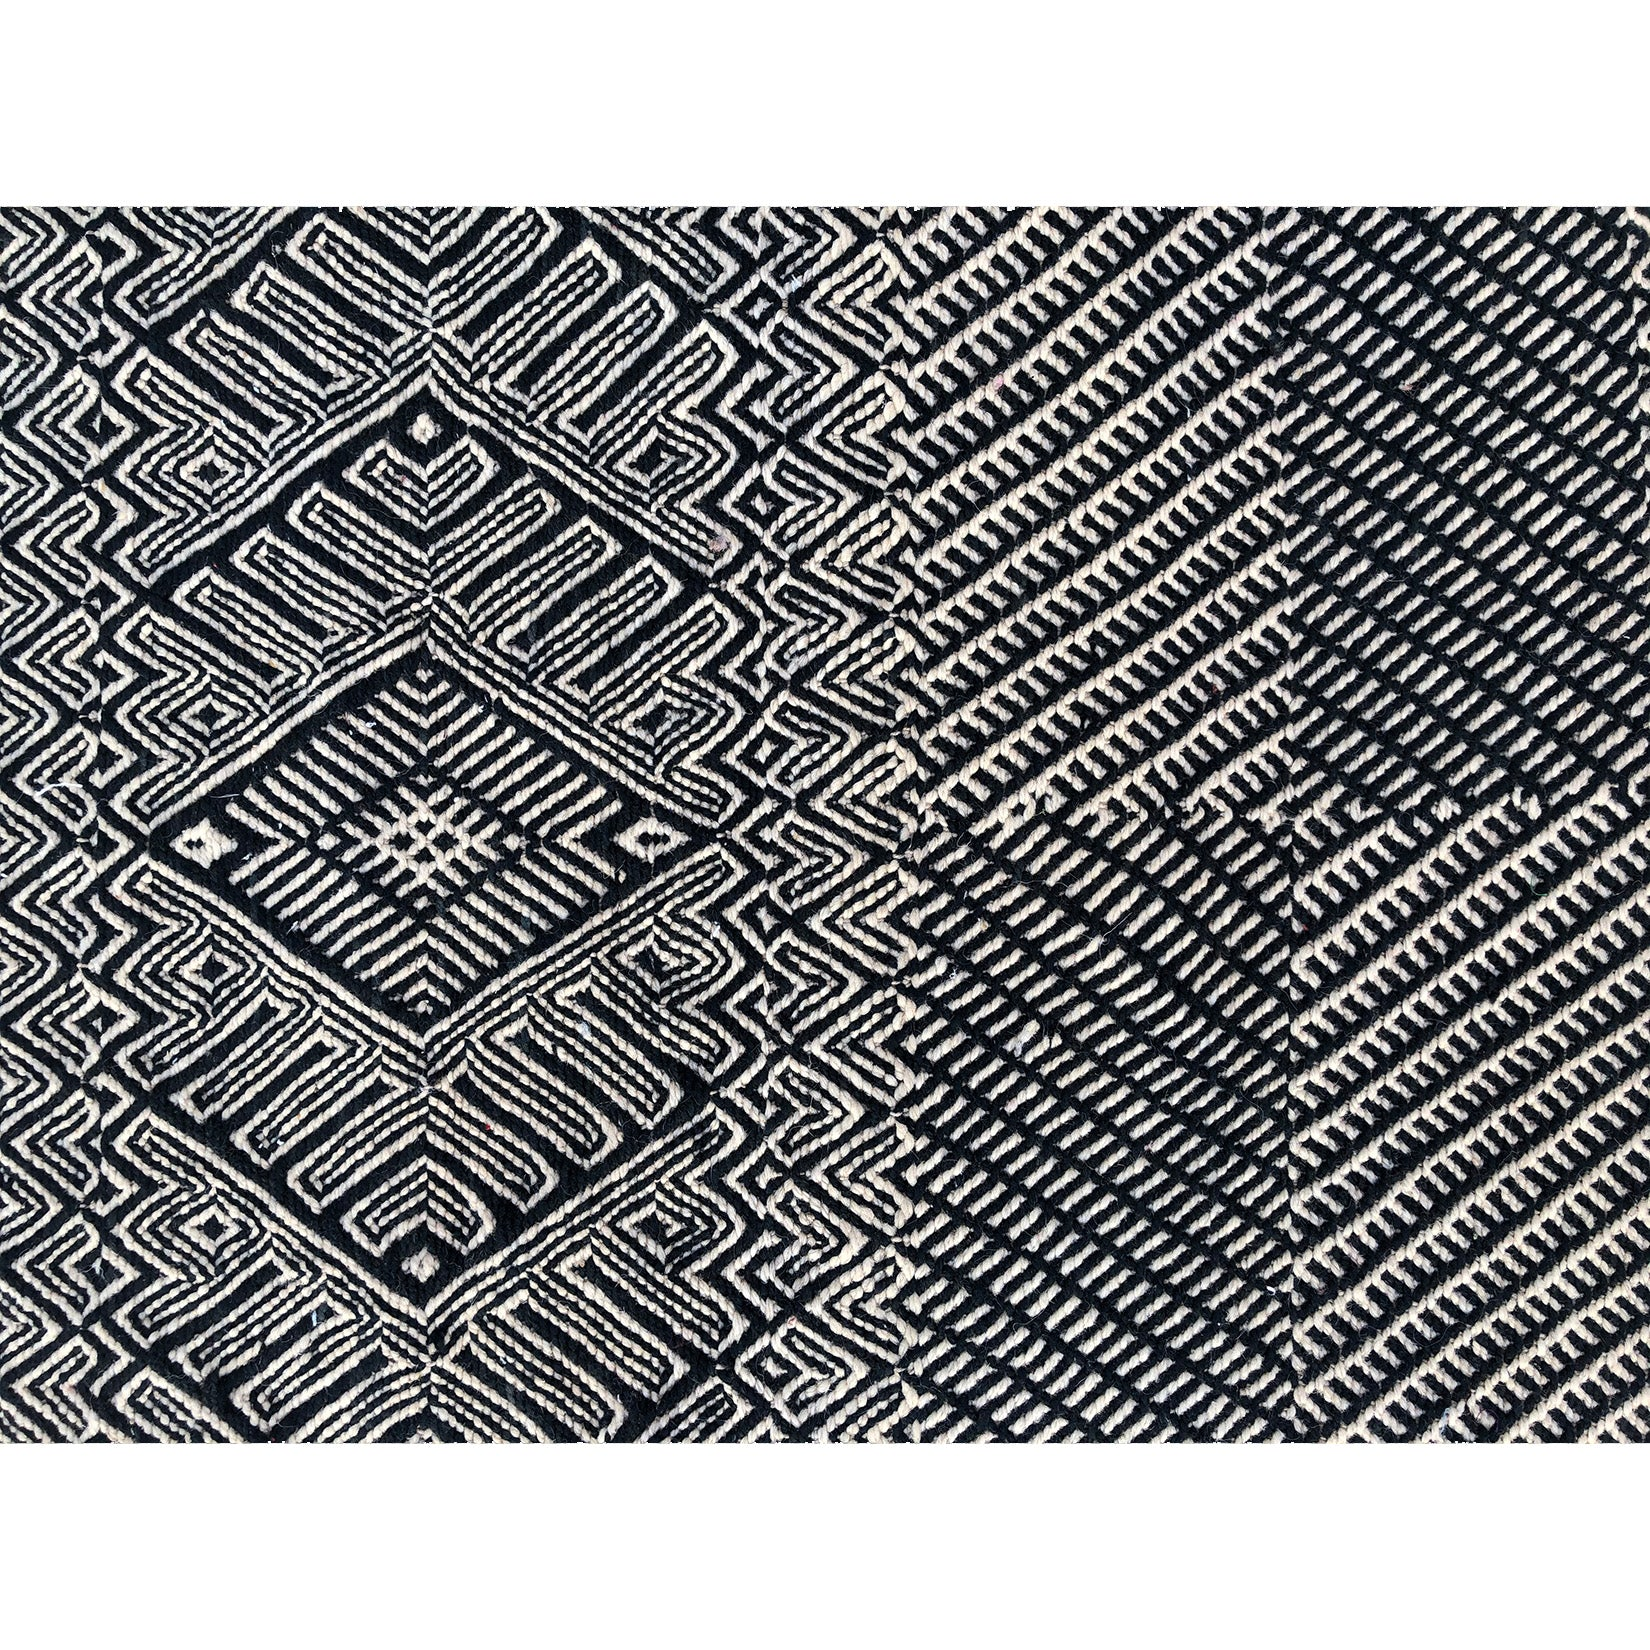 Black and white authentic flat weave berber rug - Kantara | Moroccan Rugs